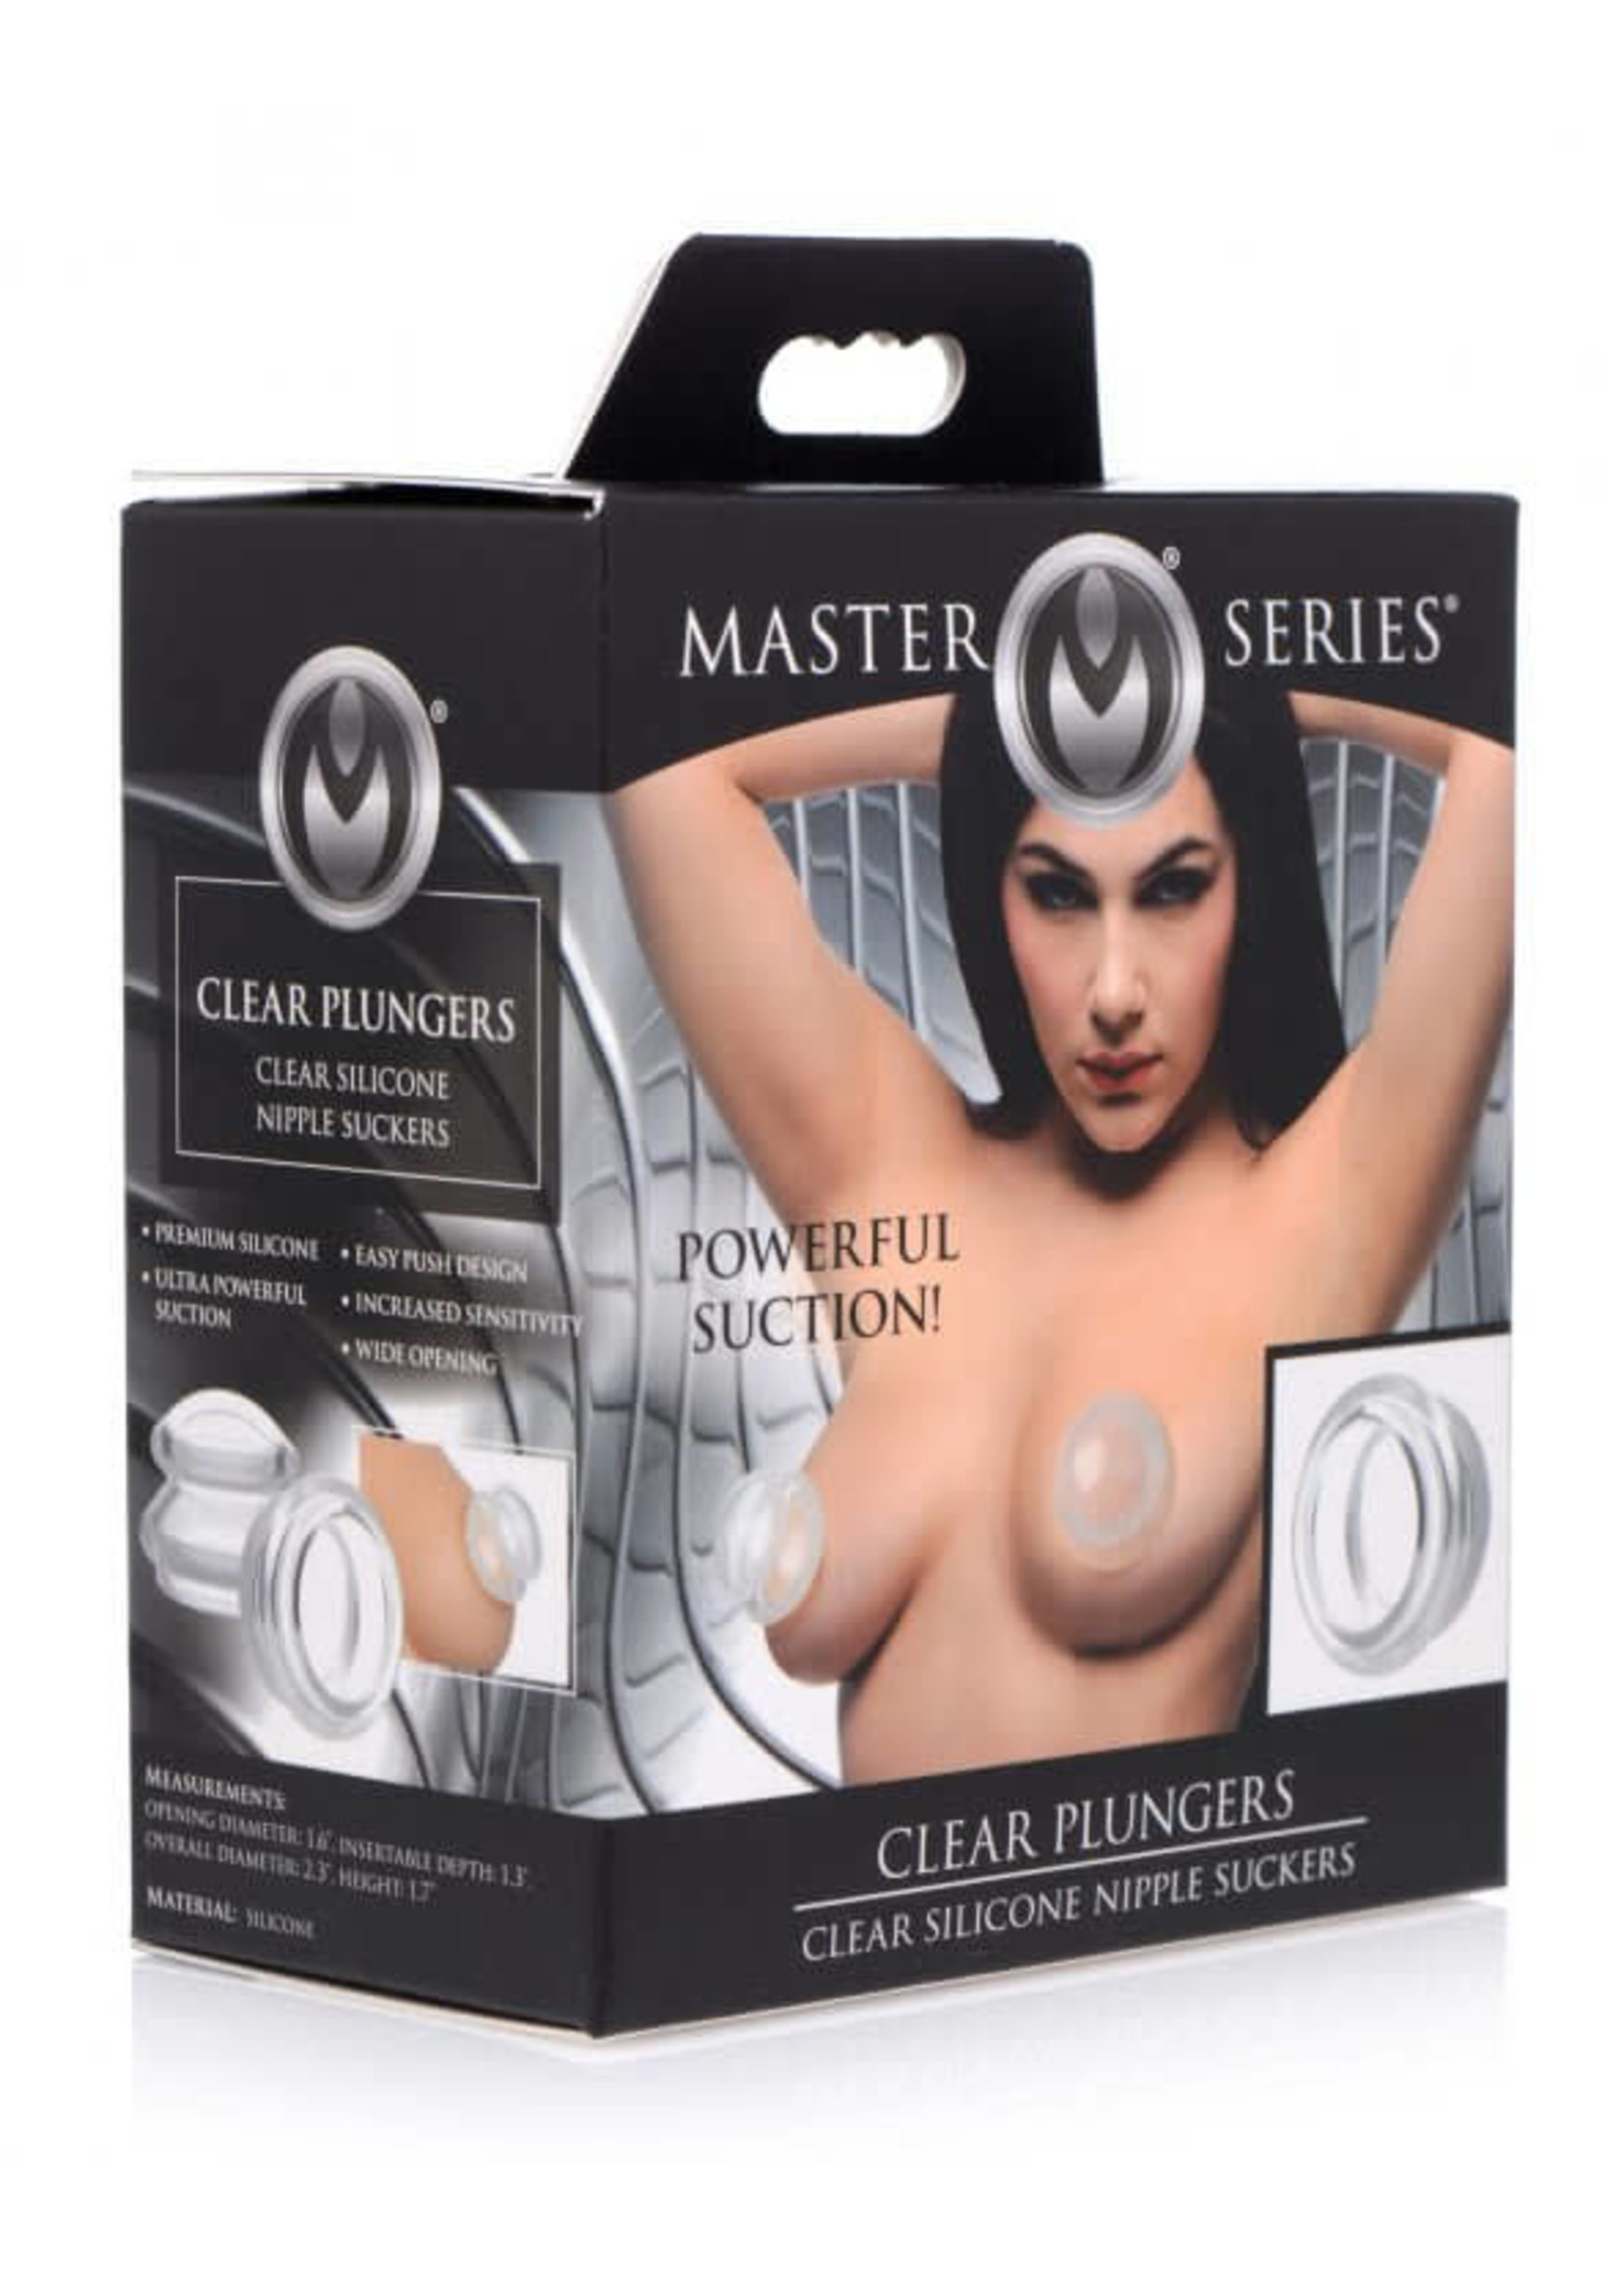 Clear Plungers Silicone Nipple Suckers - Large